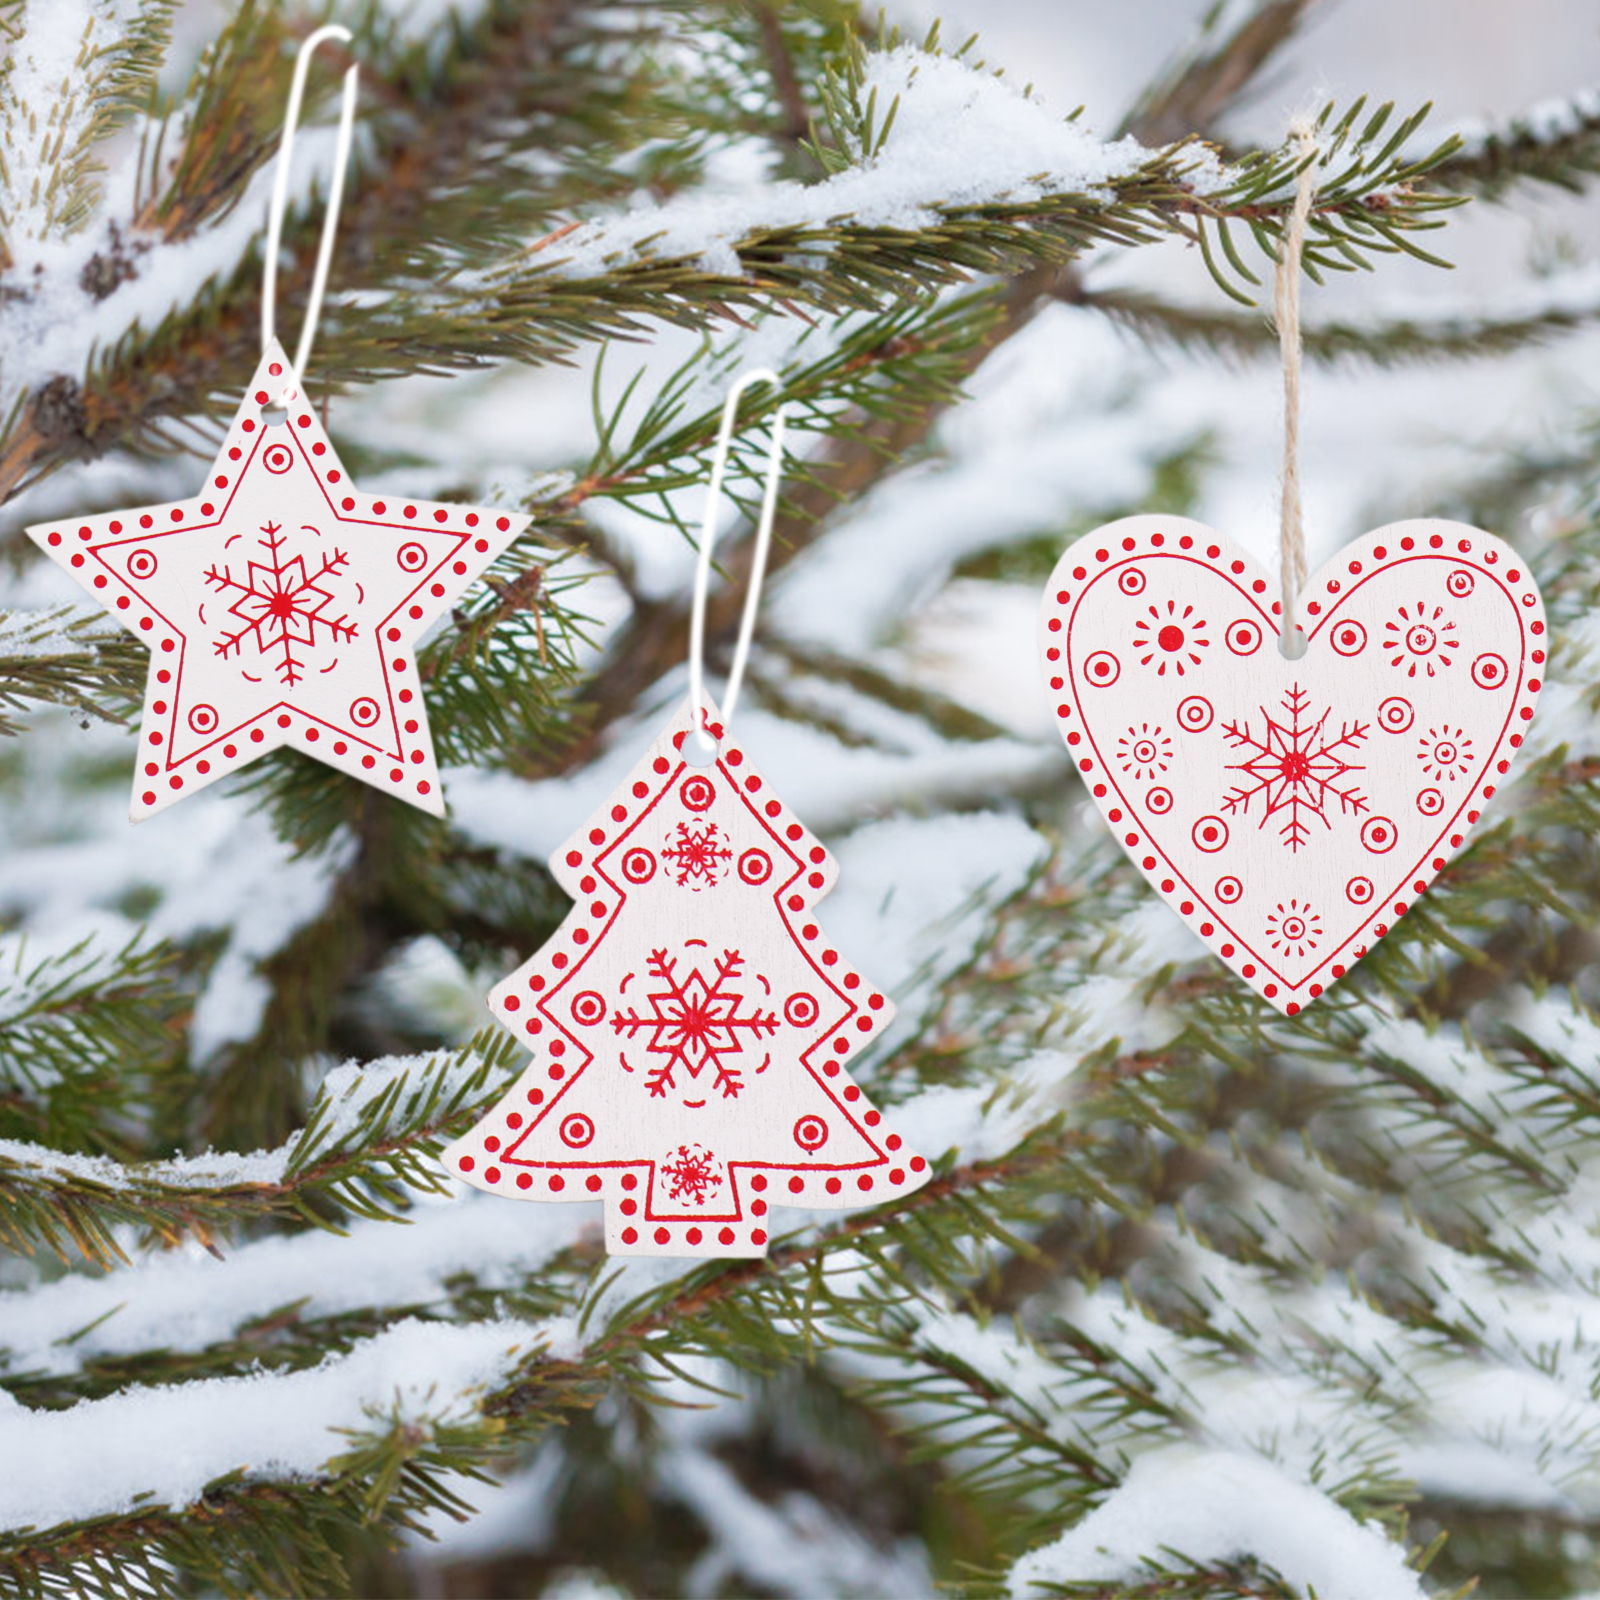 Christmas Wood Crafts.Us 0 58 25 Off Christmas Wooden Pendants Diy Wood Crafts Star Heart Xmas Tree Hanging Ornaments Christmas Party For Kids Gift Home Decorations In